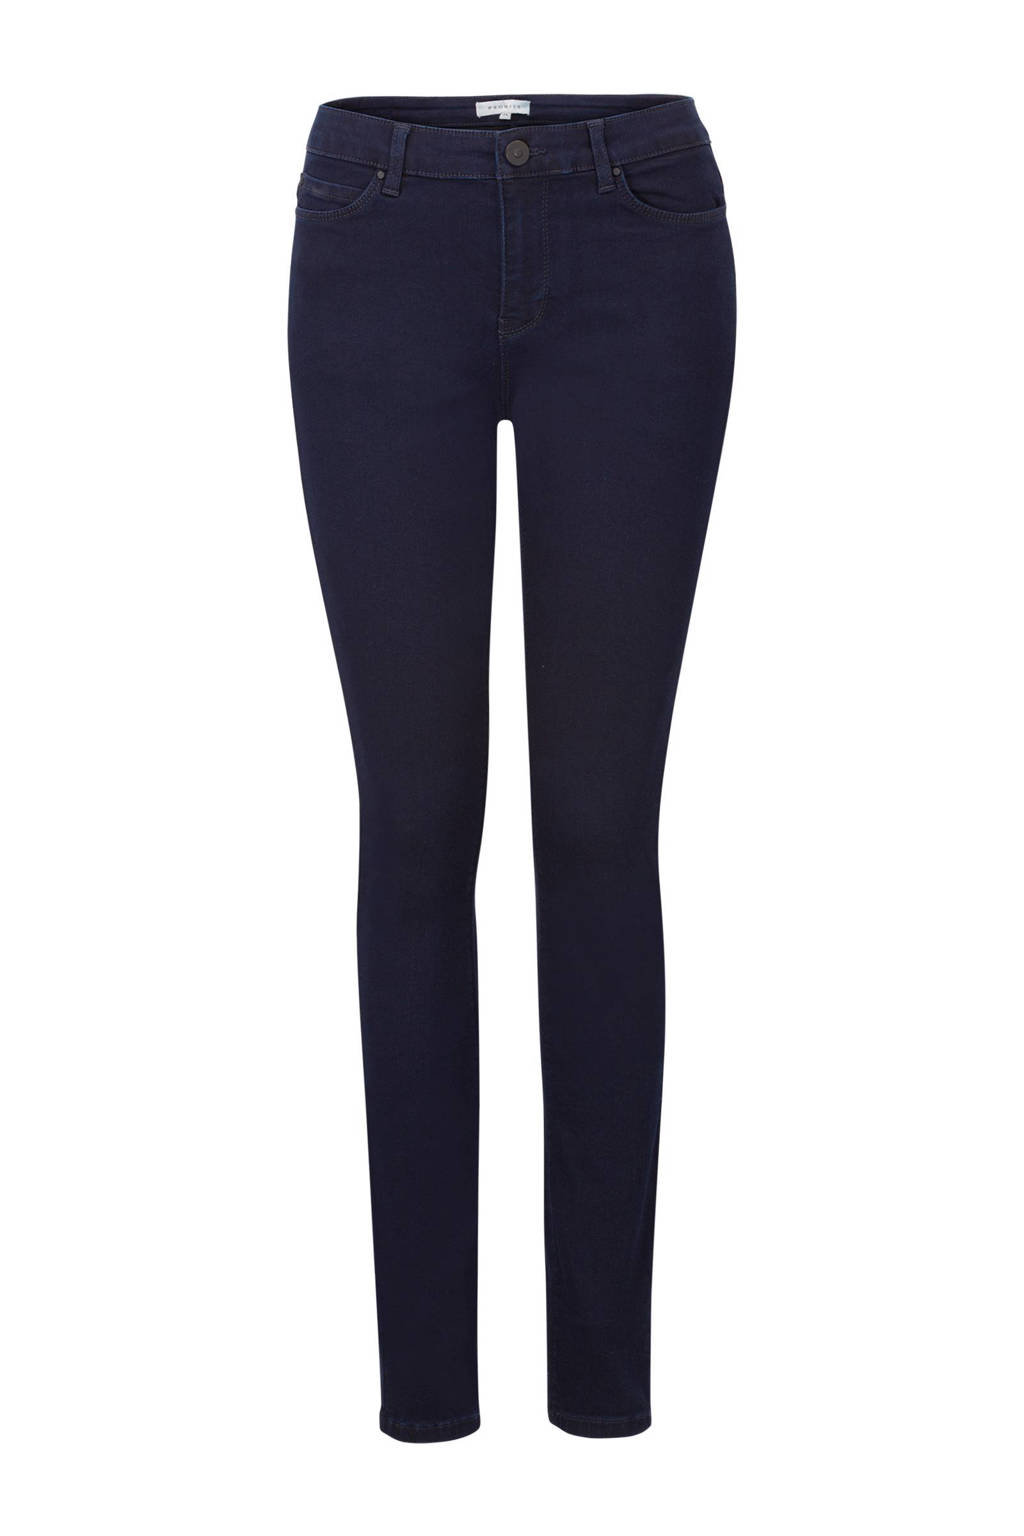 PROMISS skinny fit jeans donkerblauw, Donkerblauw